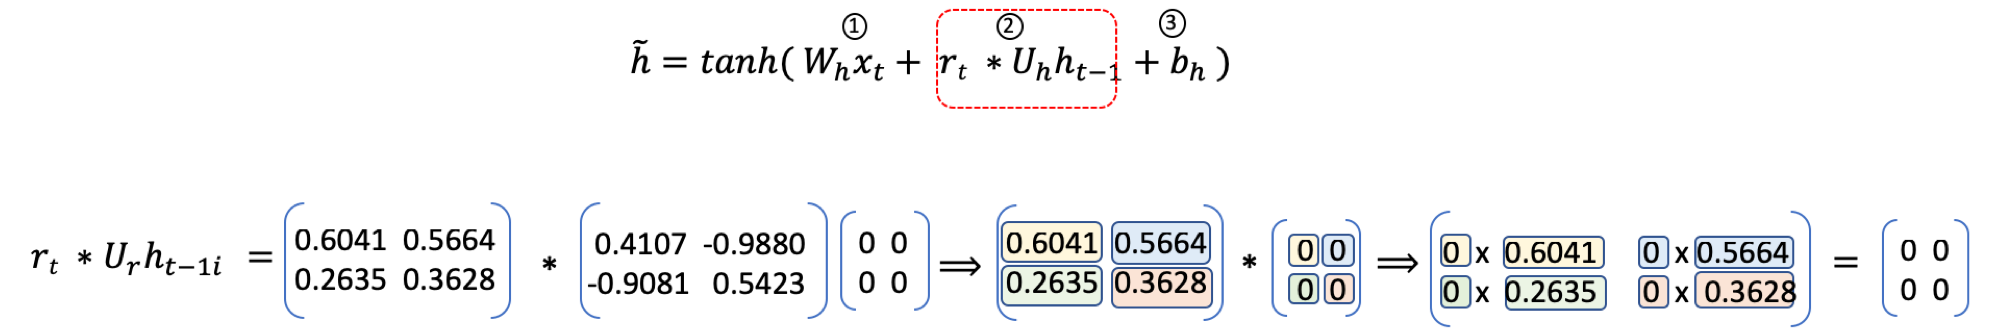 Gated Recurrent Units explained using matrices: Part 1